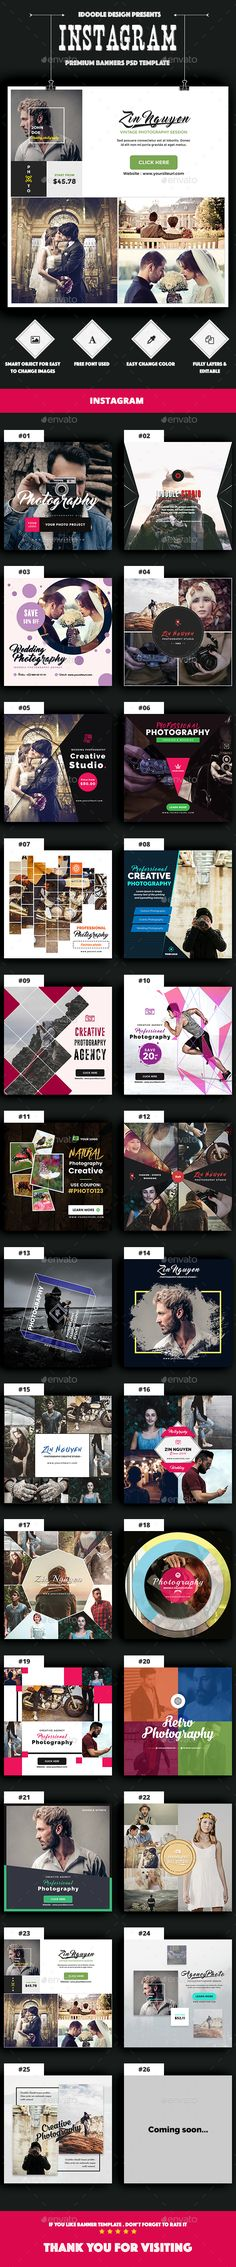 Photography Instagram Banners Ads - 25 PSD - Social Media Web Elements